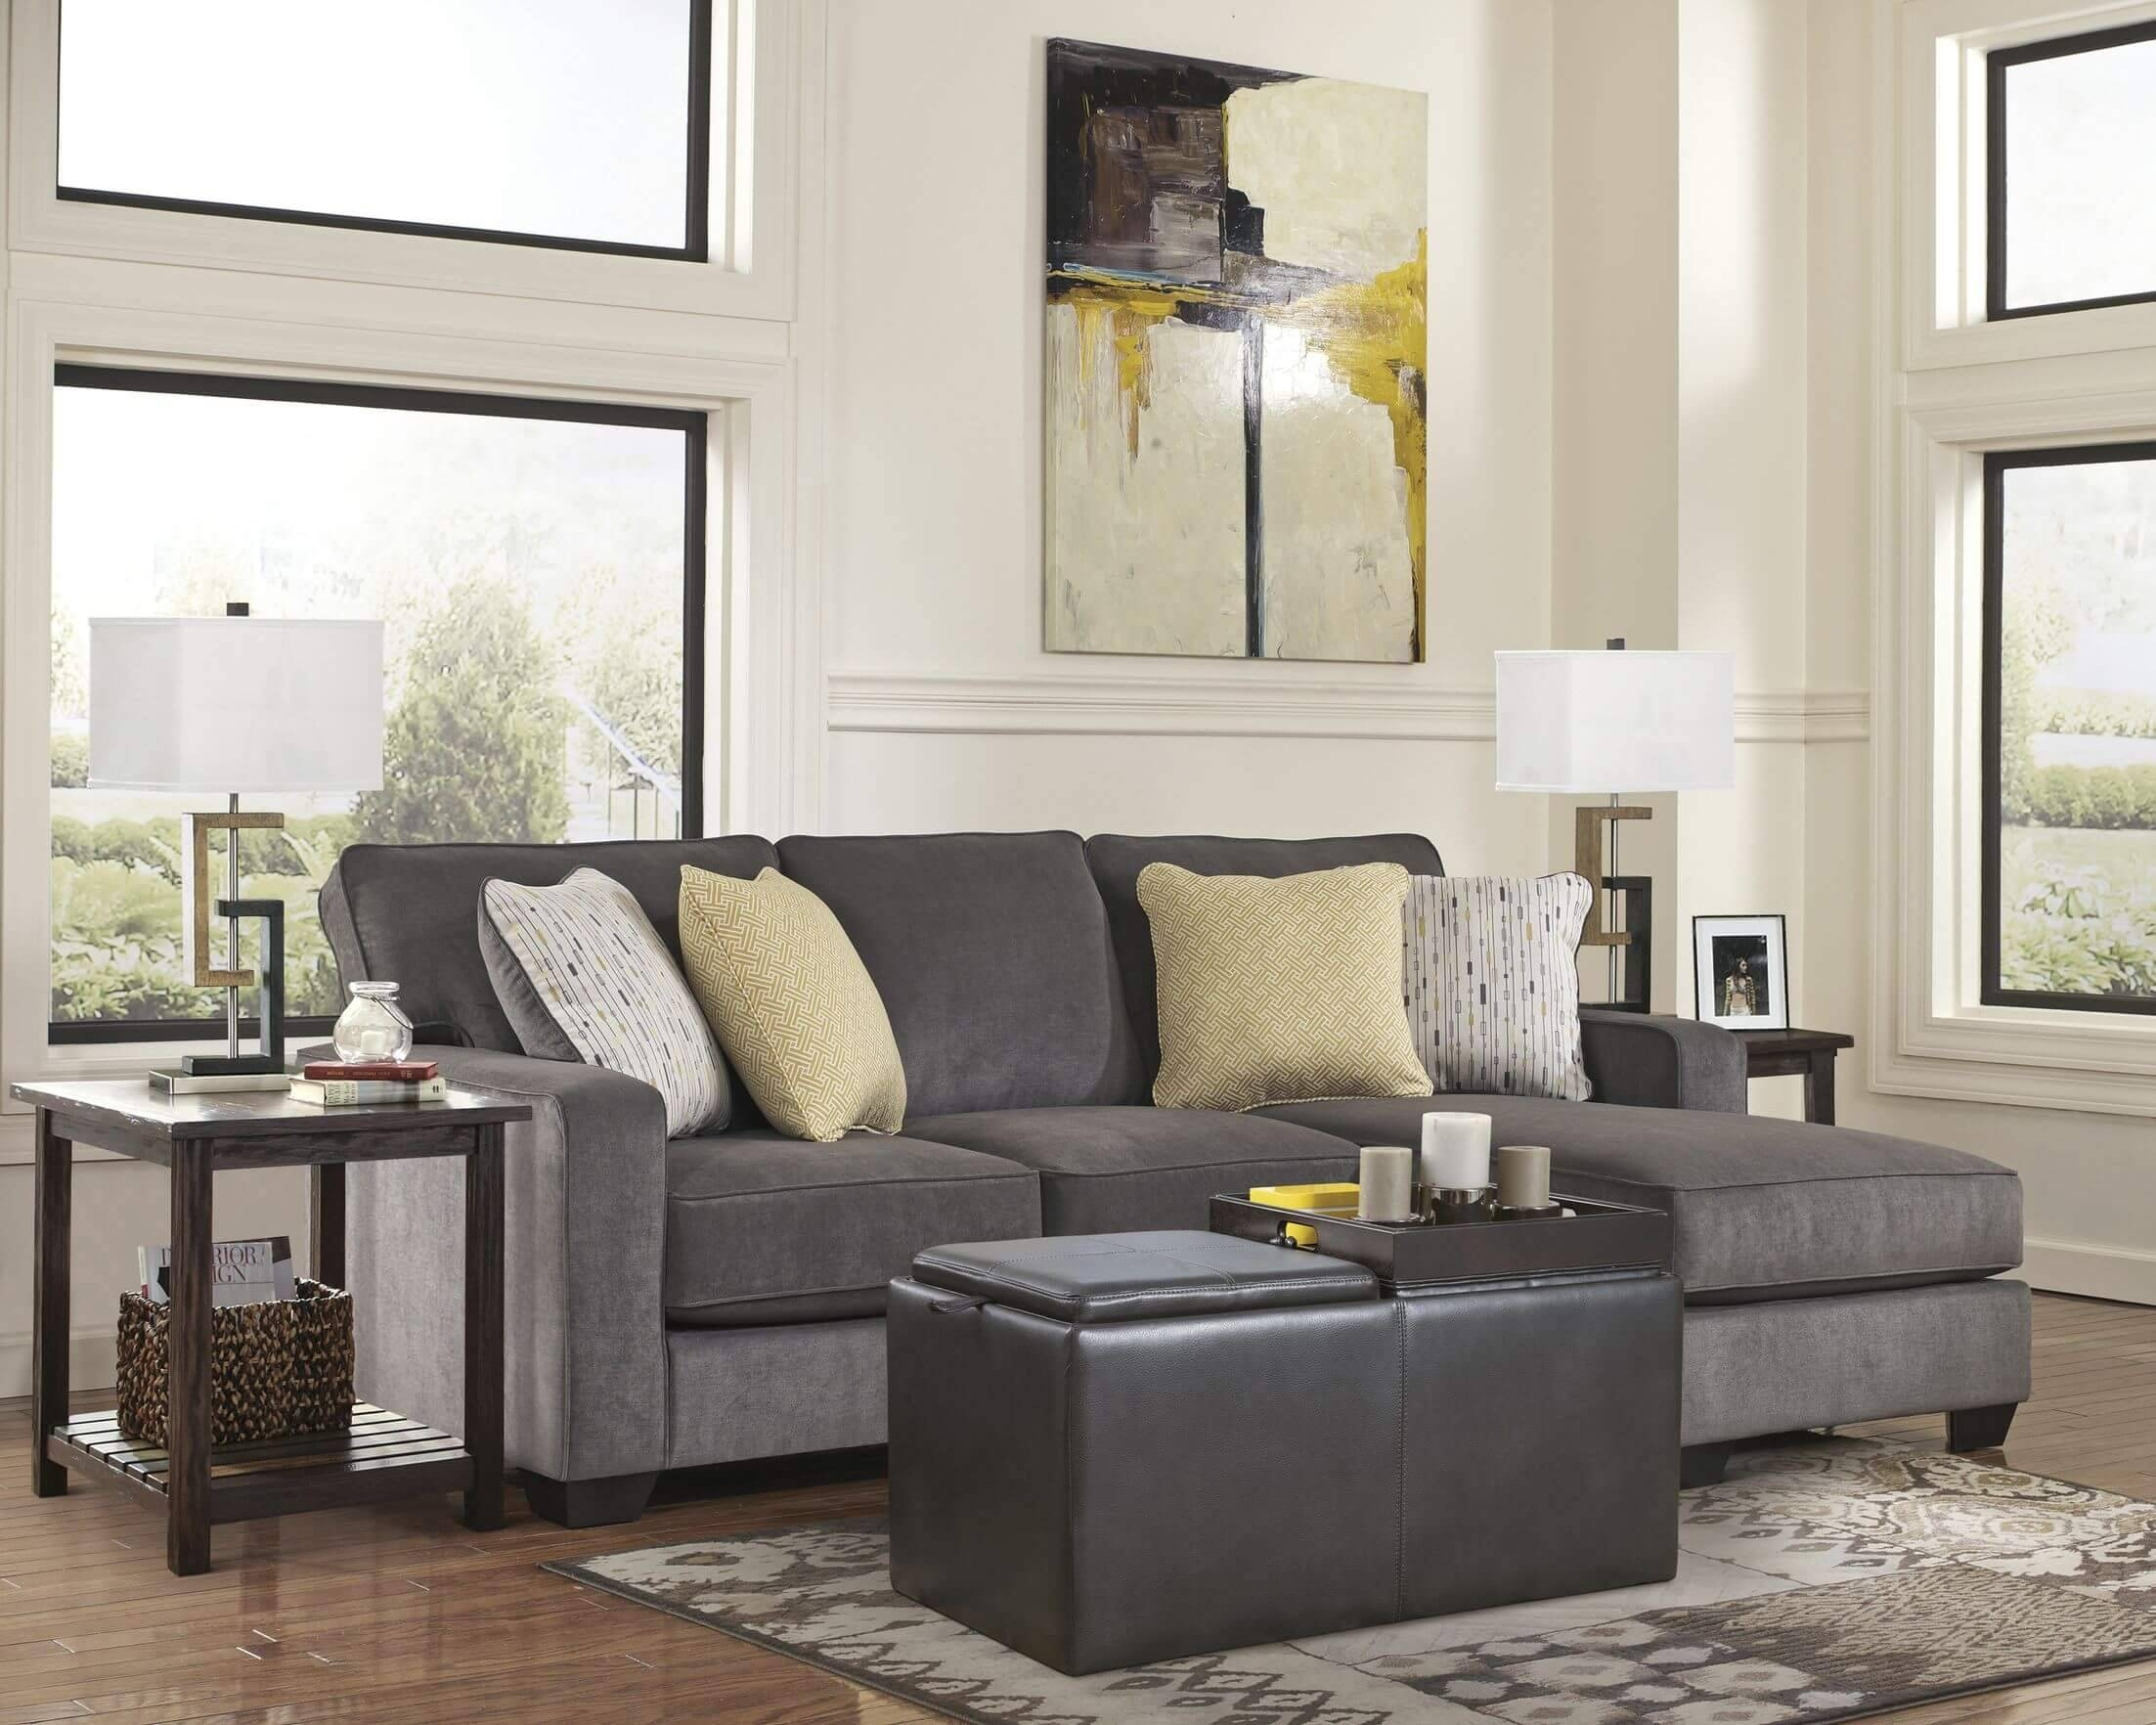 45 Contemporary Living Rooms With Sectional Sofas (Pictures) with Sectional Sofa Ideas (Image 5 of 30)